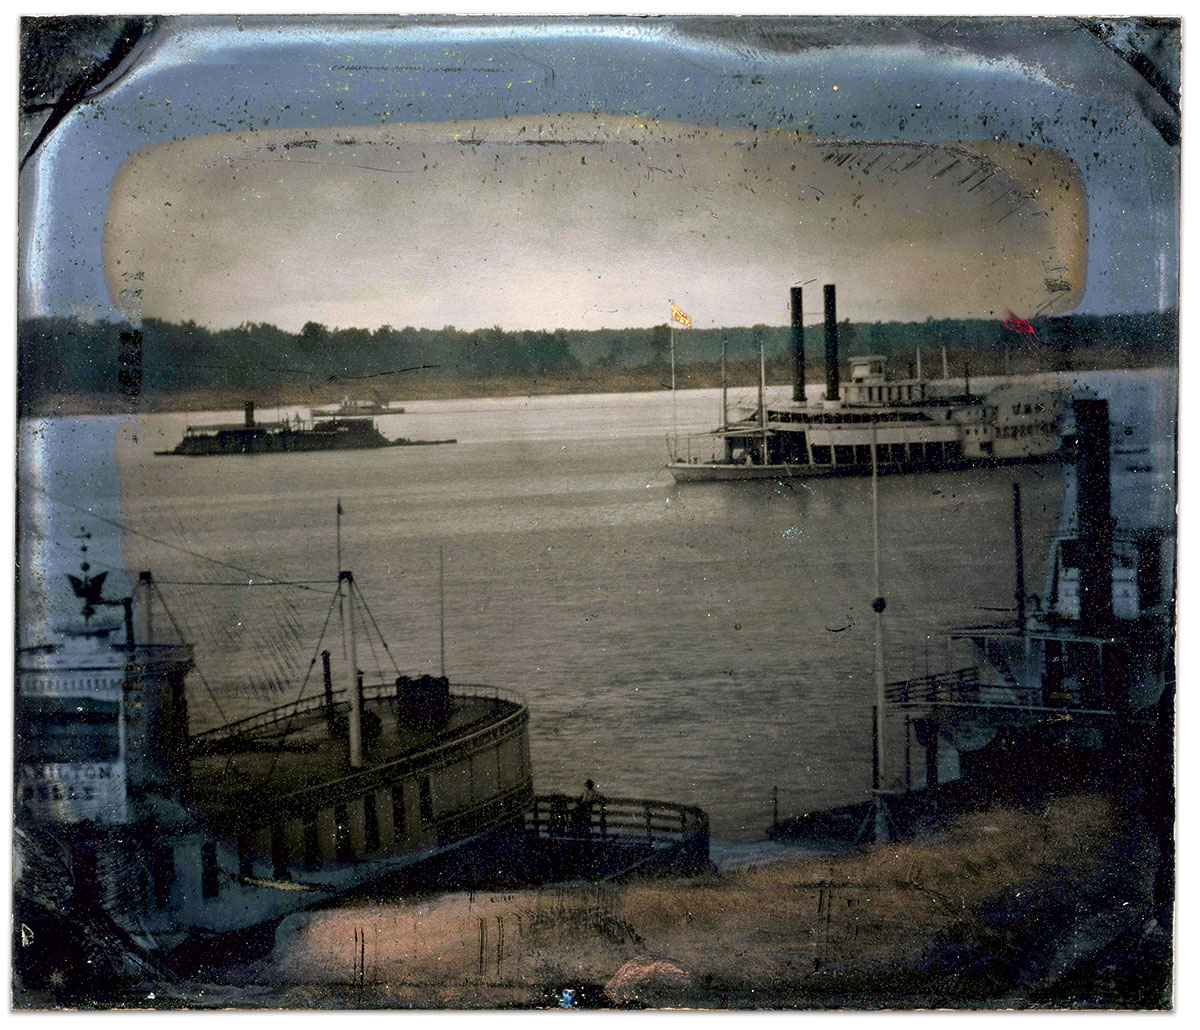 """The Hamilton Belle is moored nearest the camera. In the middle distance is a vessel with the designation """"U.S.N. DESPATCH"""" on the paddle box, one of at least three such ships operating on western rivers. The familiar box shape of an Eads gunboat is visible further midstream. Sixth-plate tintype (reversed) possibly by Andrew D. Lytle of Baton Rouge, La."""